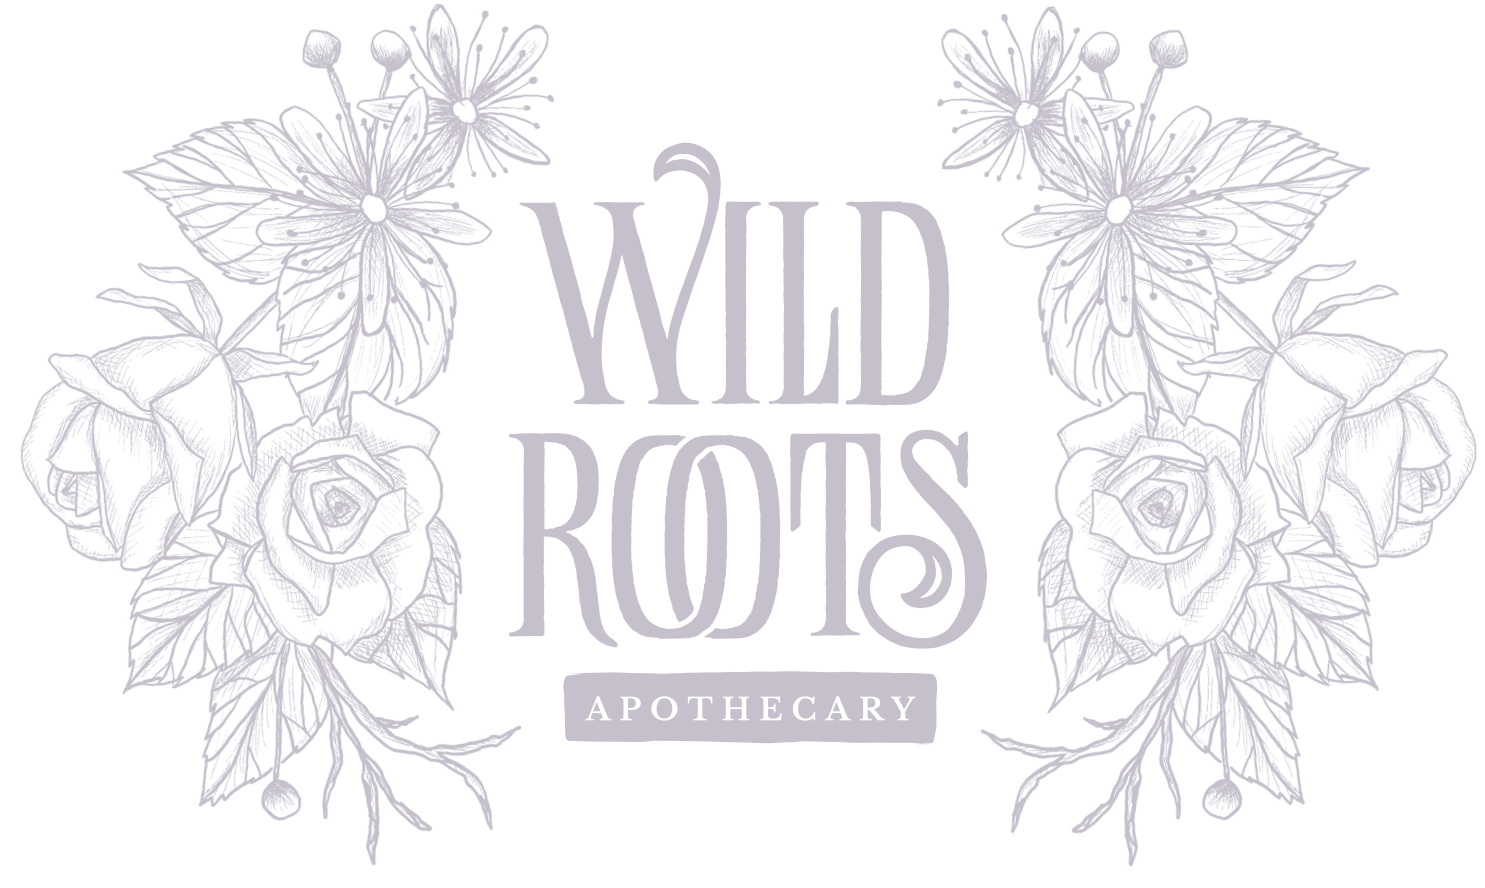 Wild Roots Apothecary